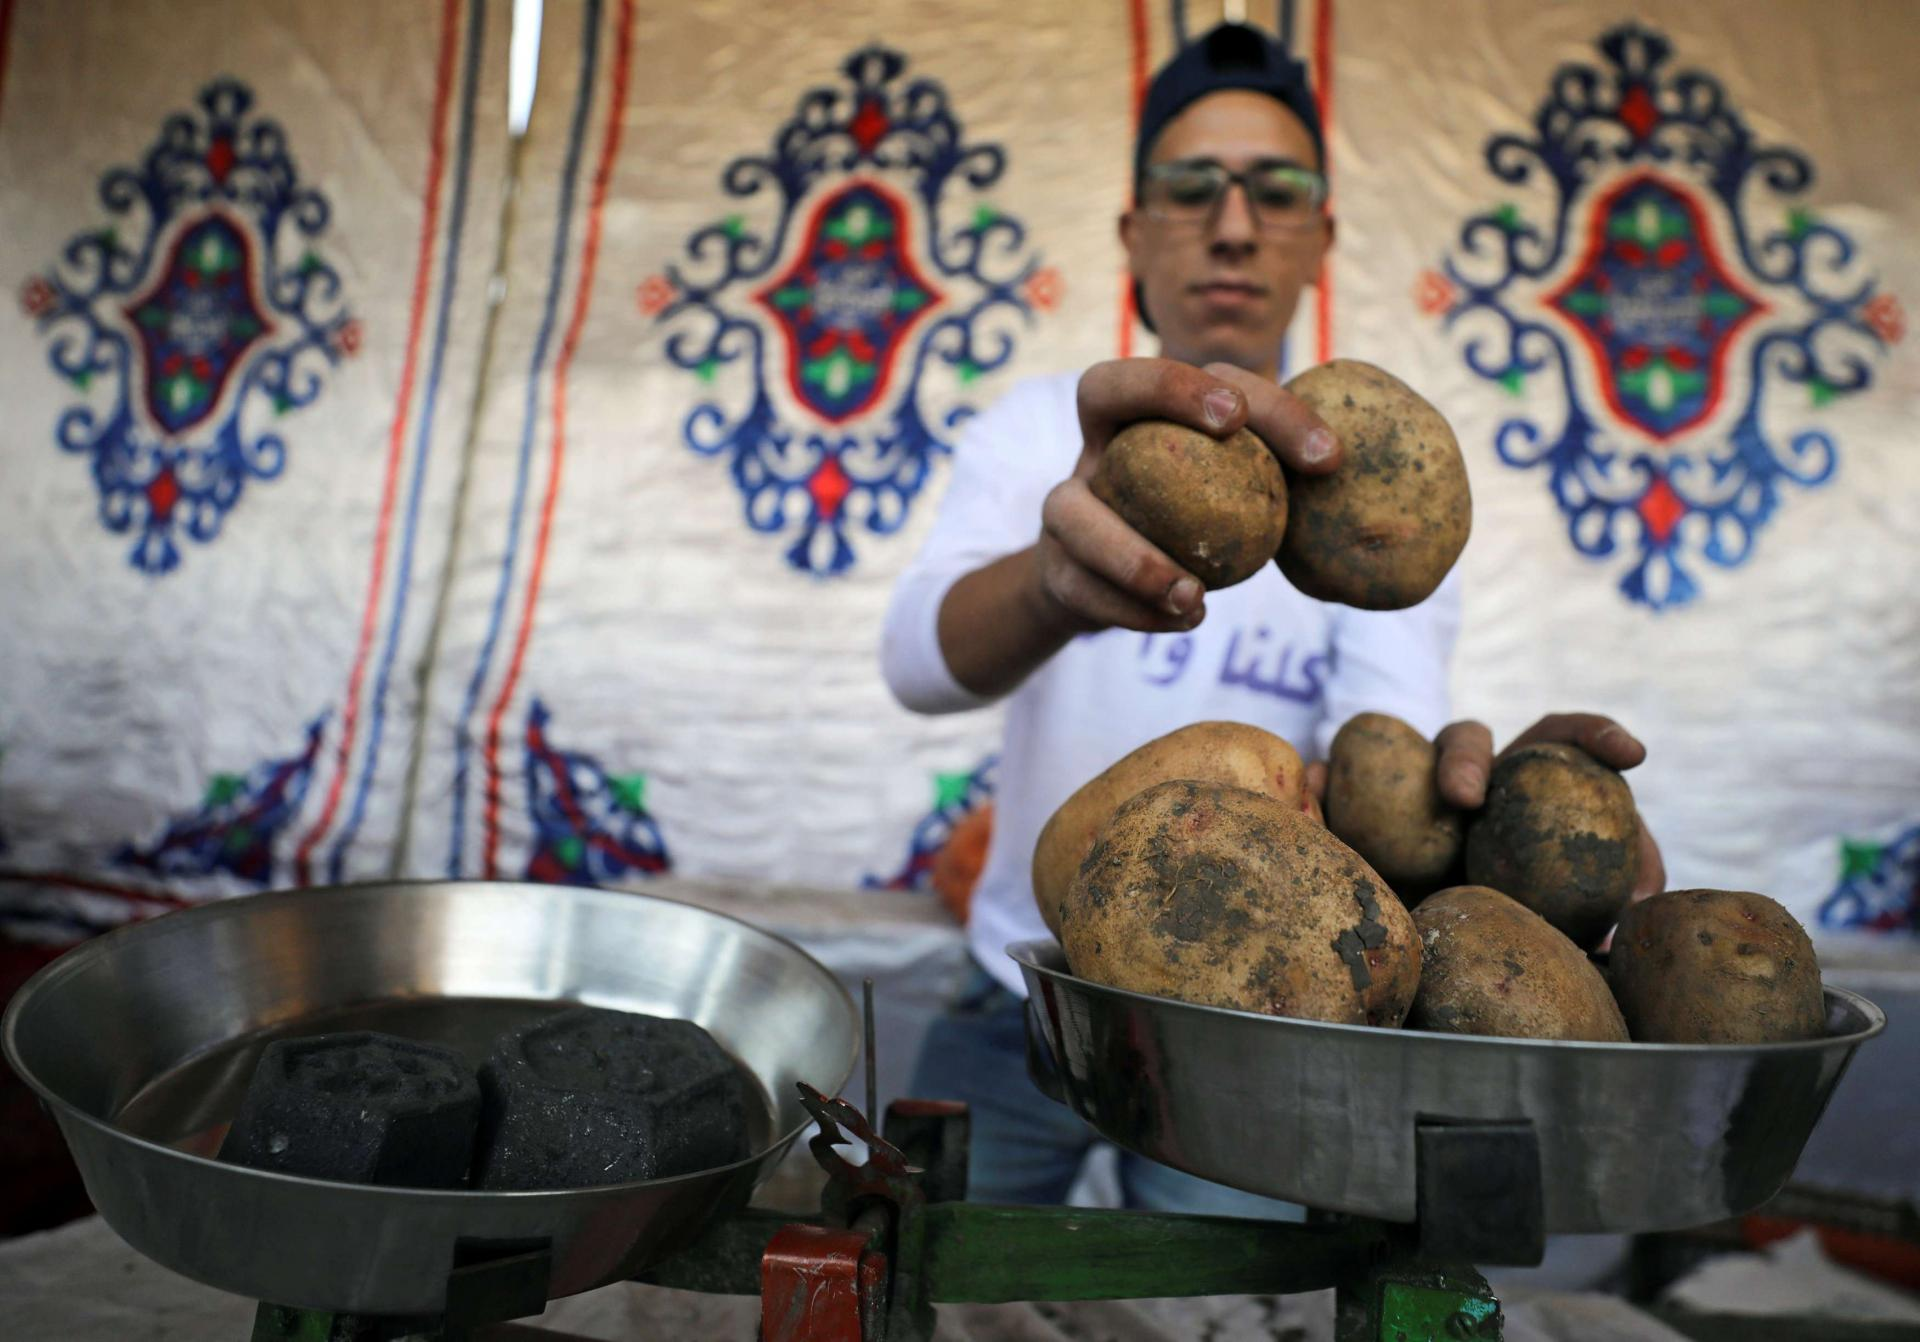 A vendor weighs potatoes at a temporary tent with government subsidised goods, after consumer prices increase across the country in Cairo, Egypt.